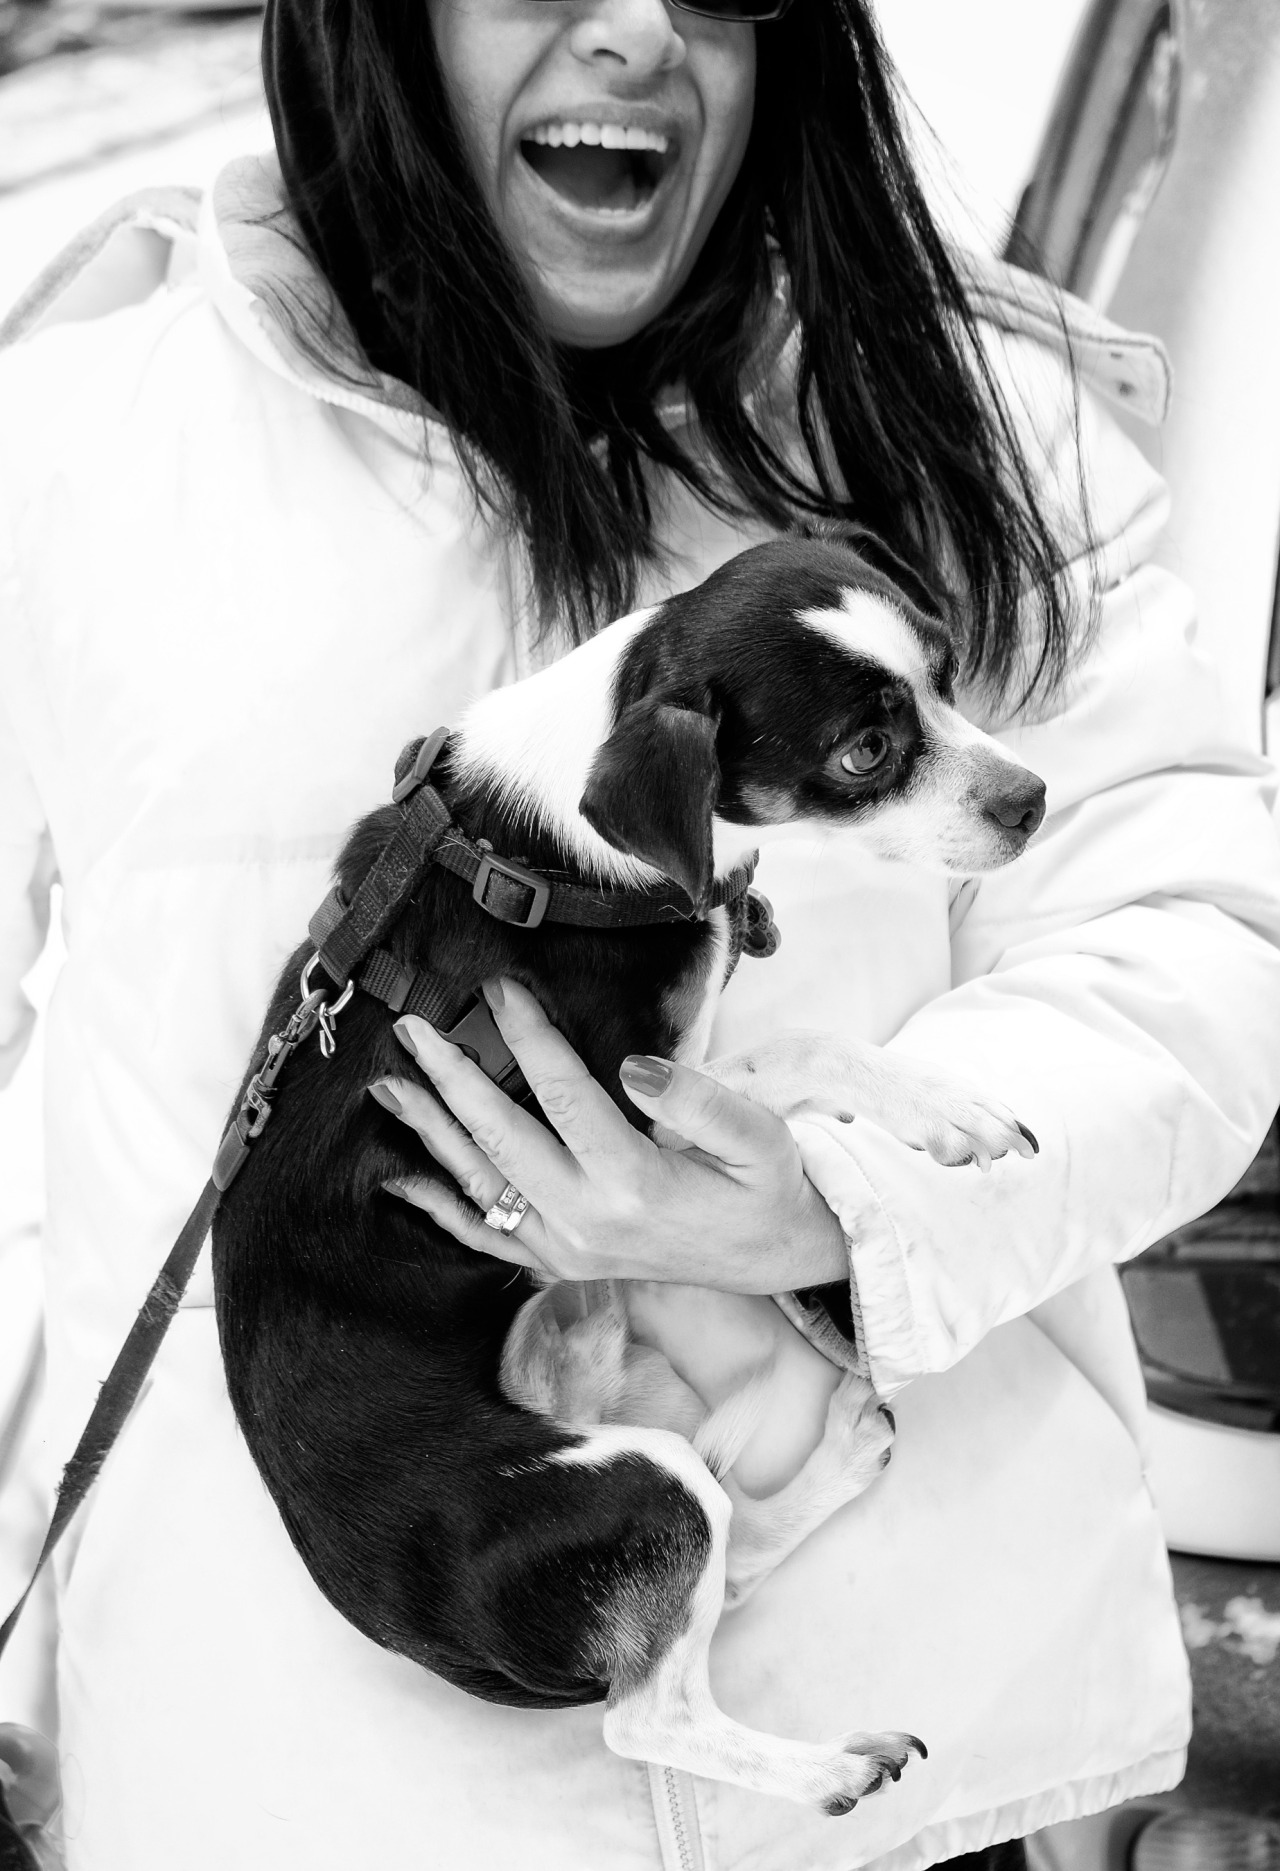 black and white photo of woman in white coat holding a black and white dog